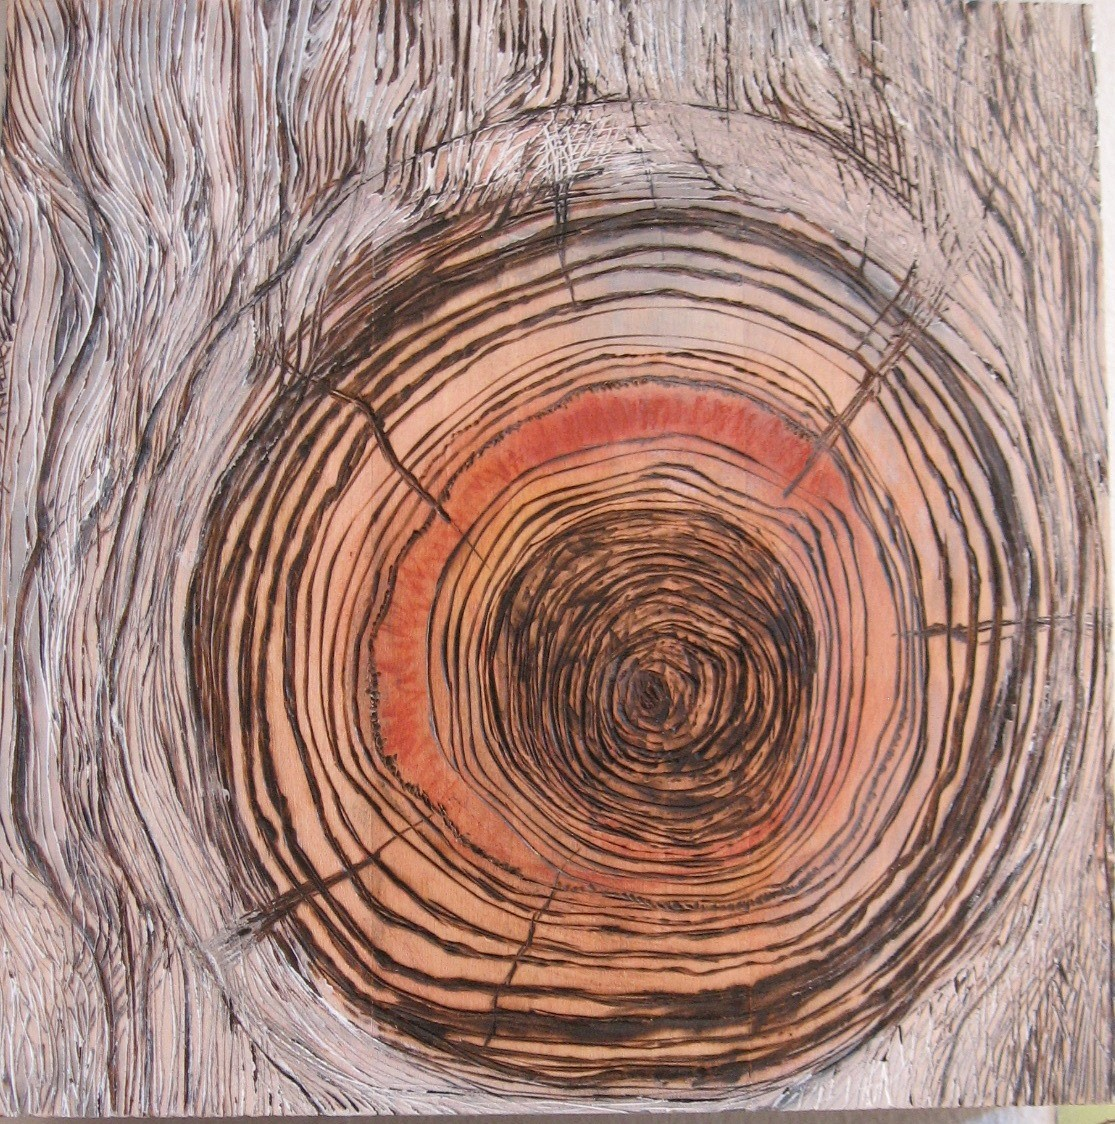 Morean Arts Center | Wood Burning Art Workshop with Rachel